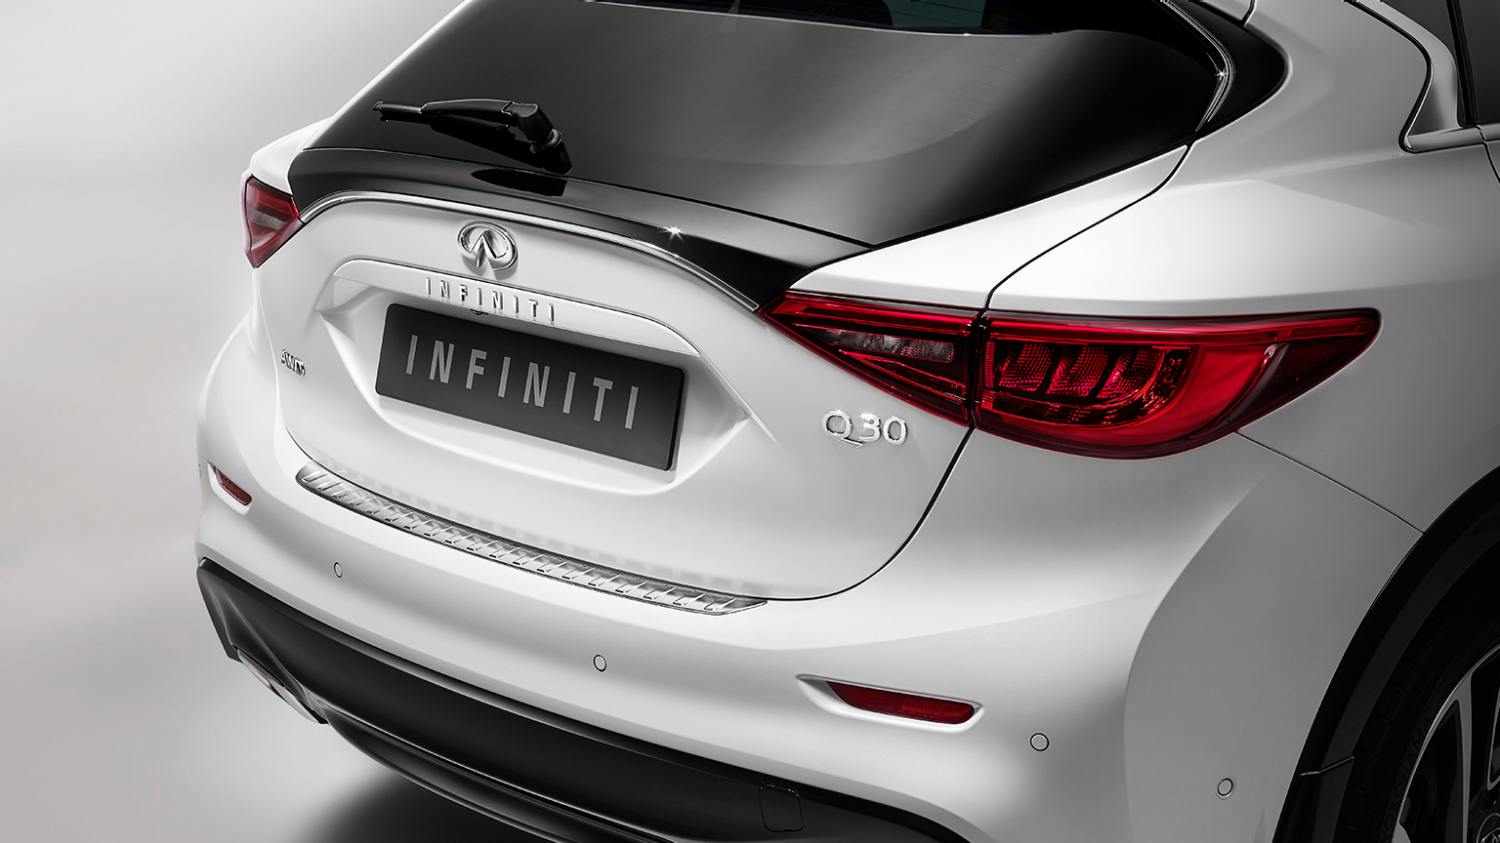 Used Infiniti Car Parts and Accessories for Sale in USA  Infiniti Car Accessories